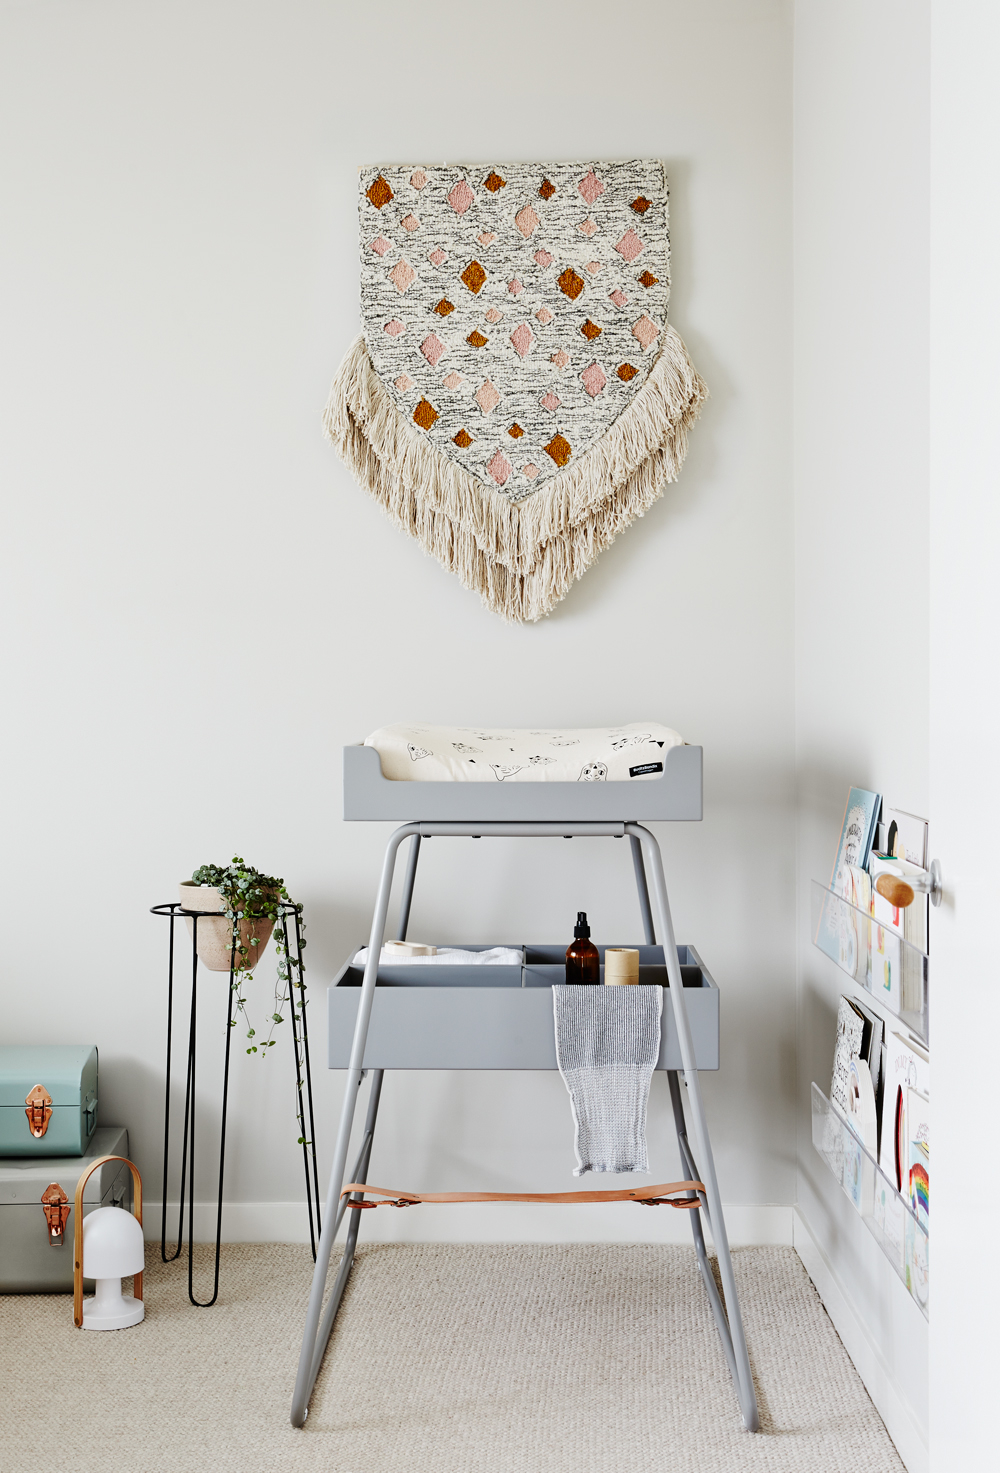 Designer High Chair Meet The Must Have Scandi Style Designer High Chair The